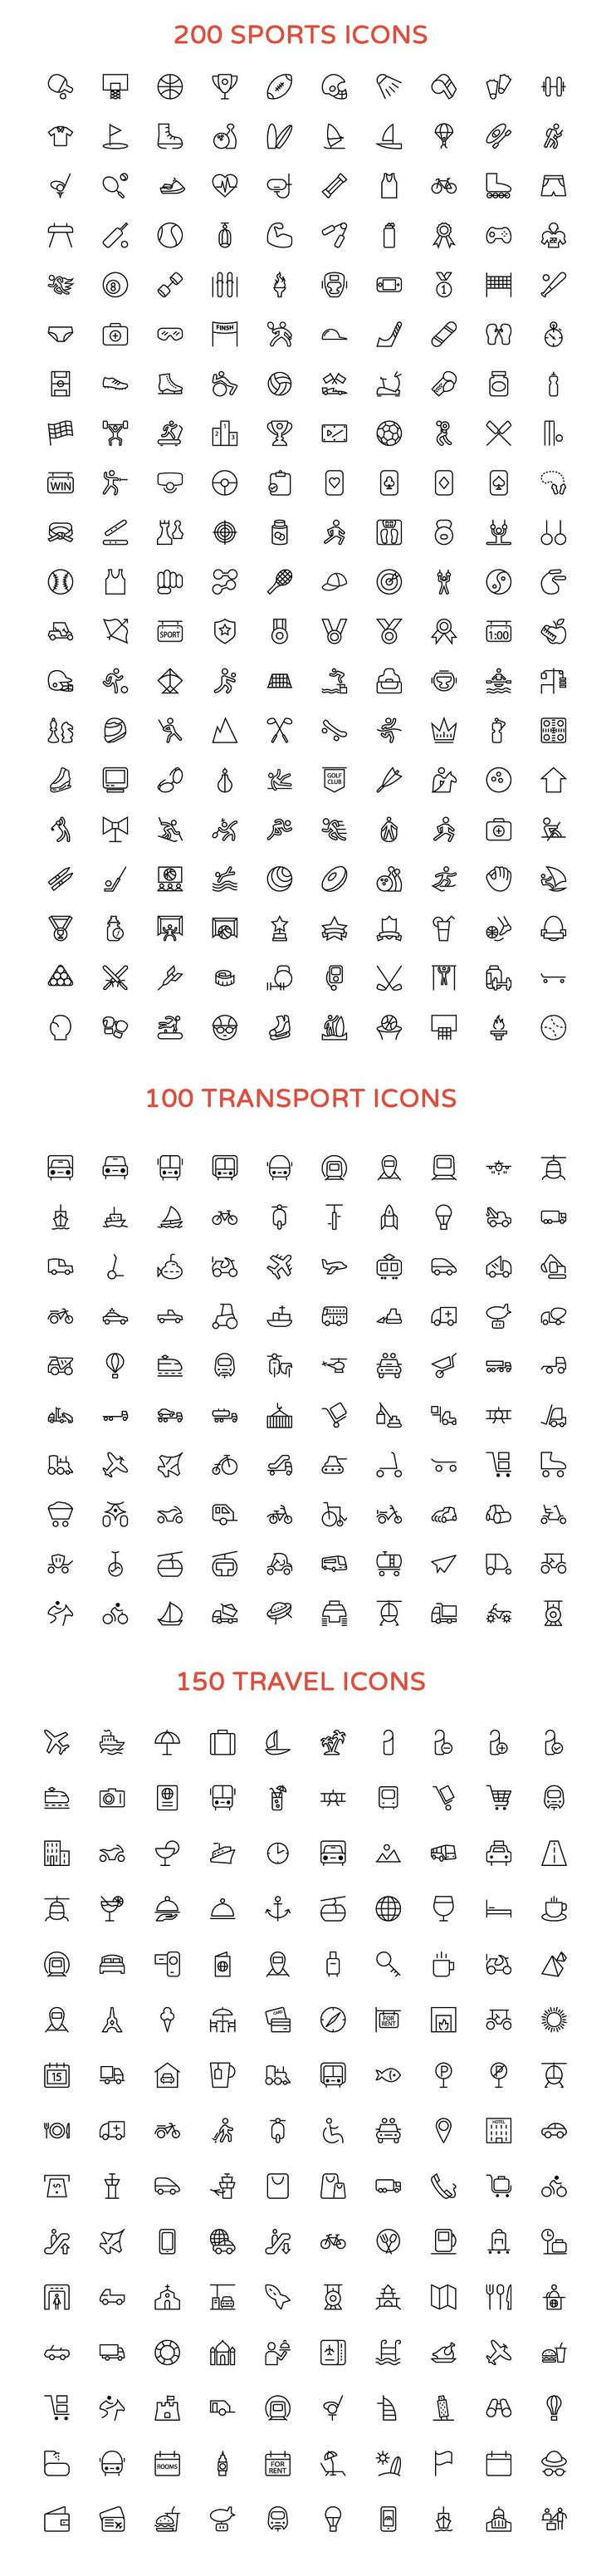 41 best Best Icons images on Pinterest | Icon set, Icons and Icon ...